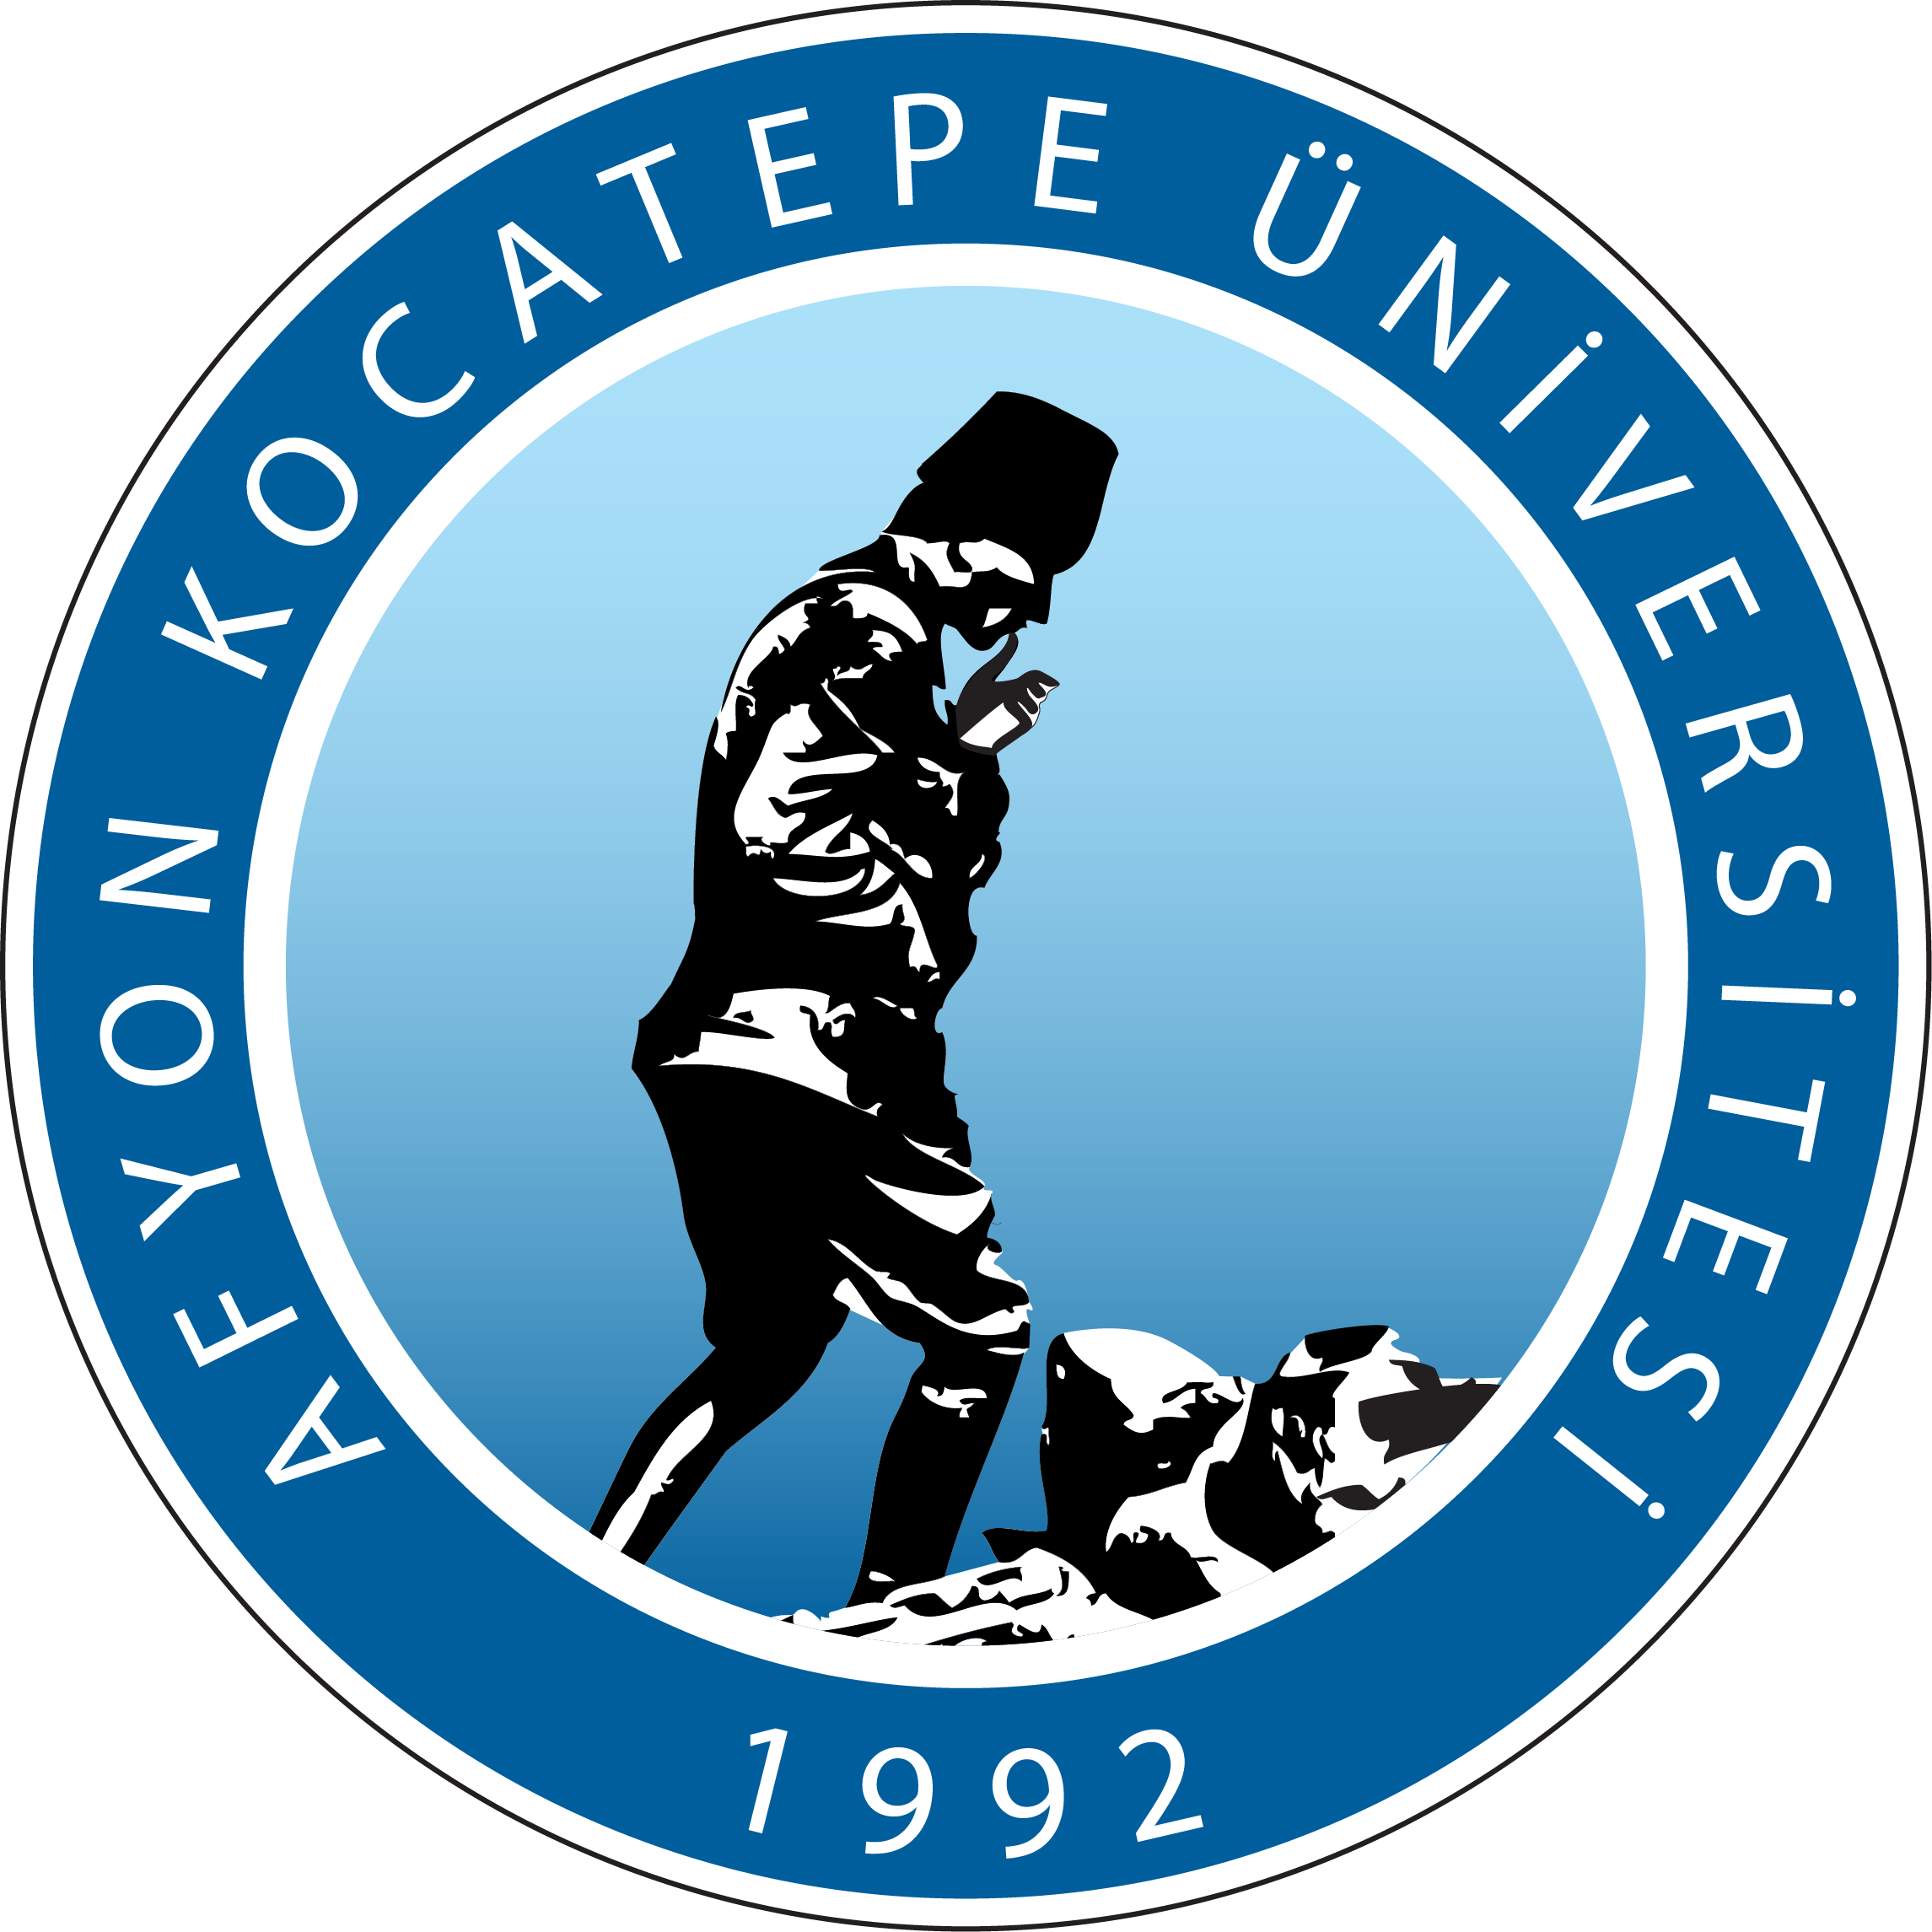 Afyon Kocatepe University